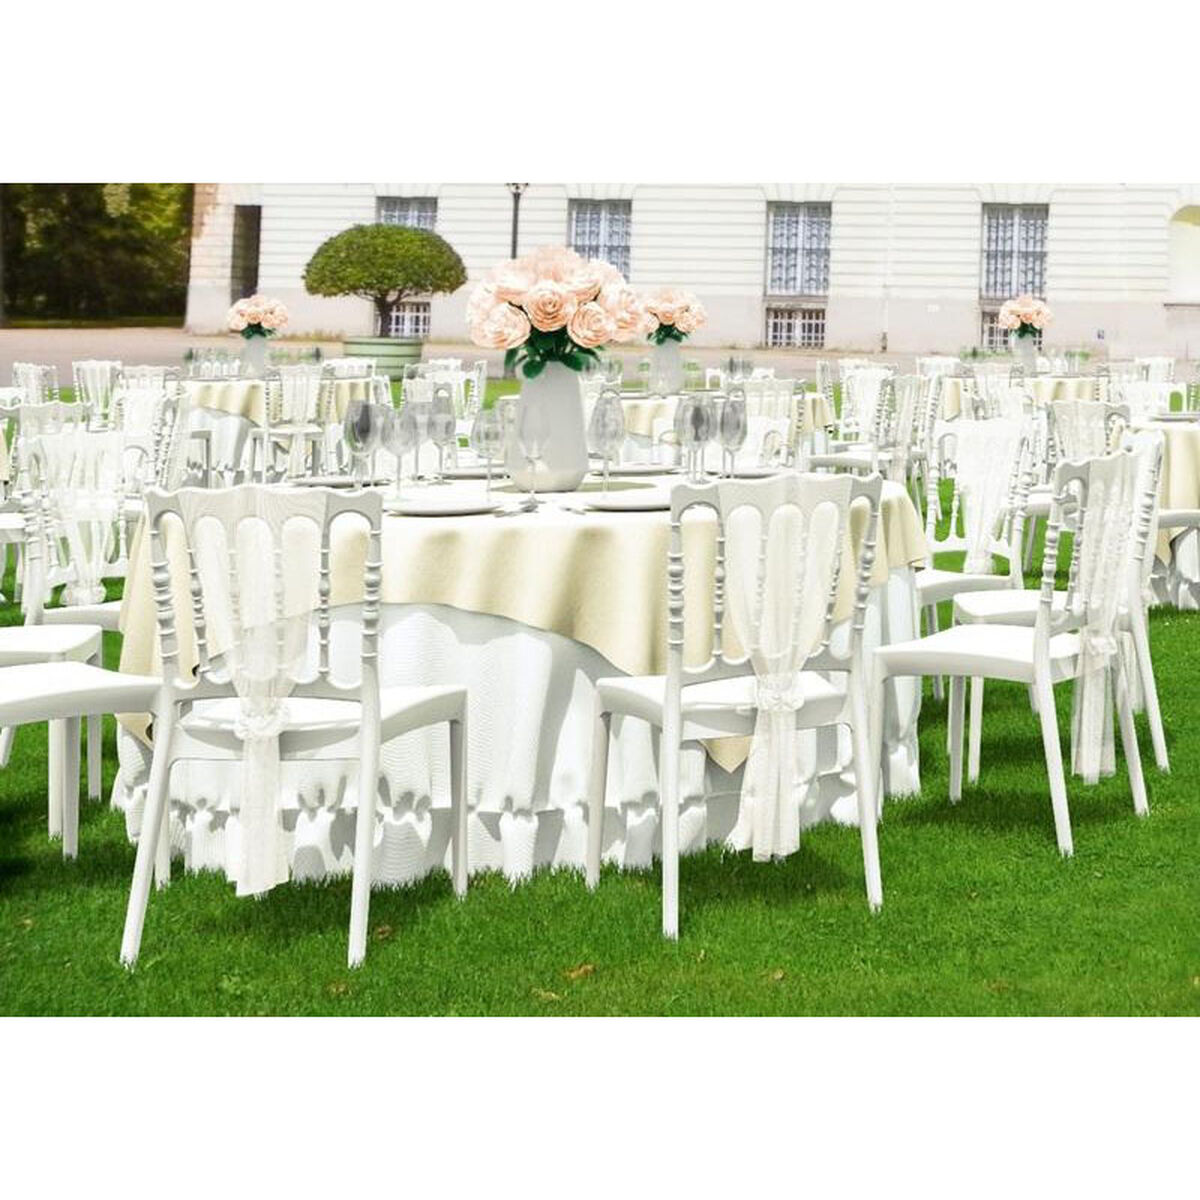 Our Napoleon Outdoor Resin Stackable Wedding Chair White Is On Now